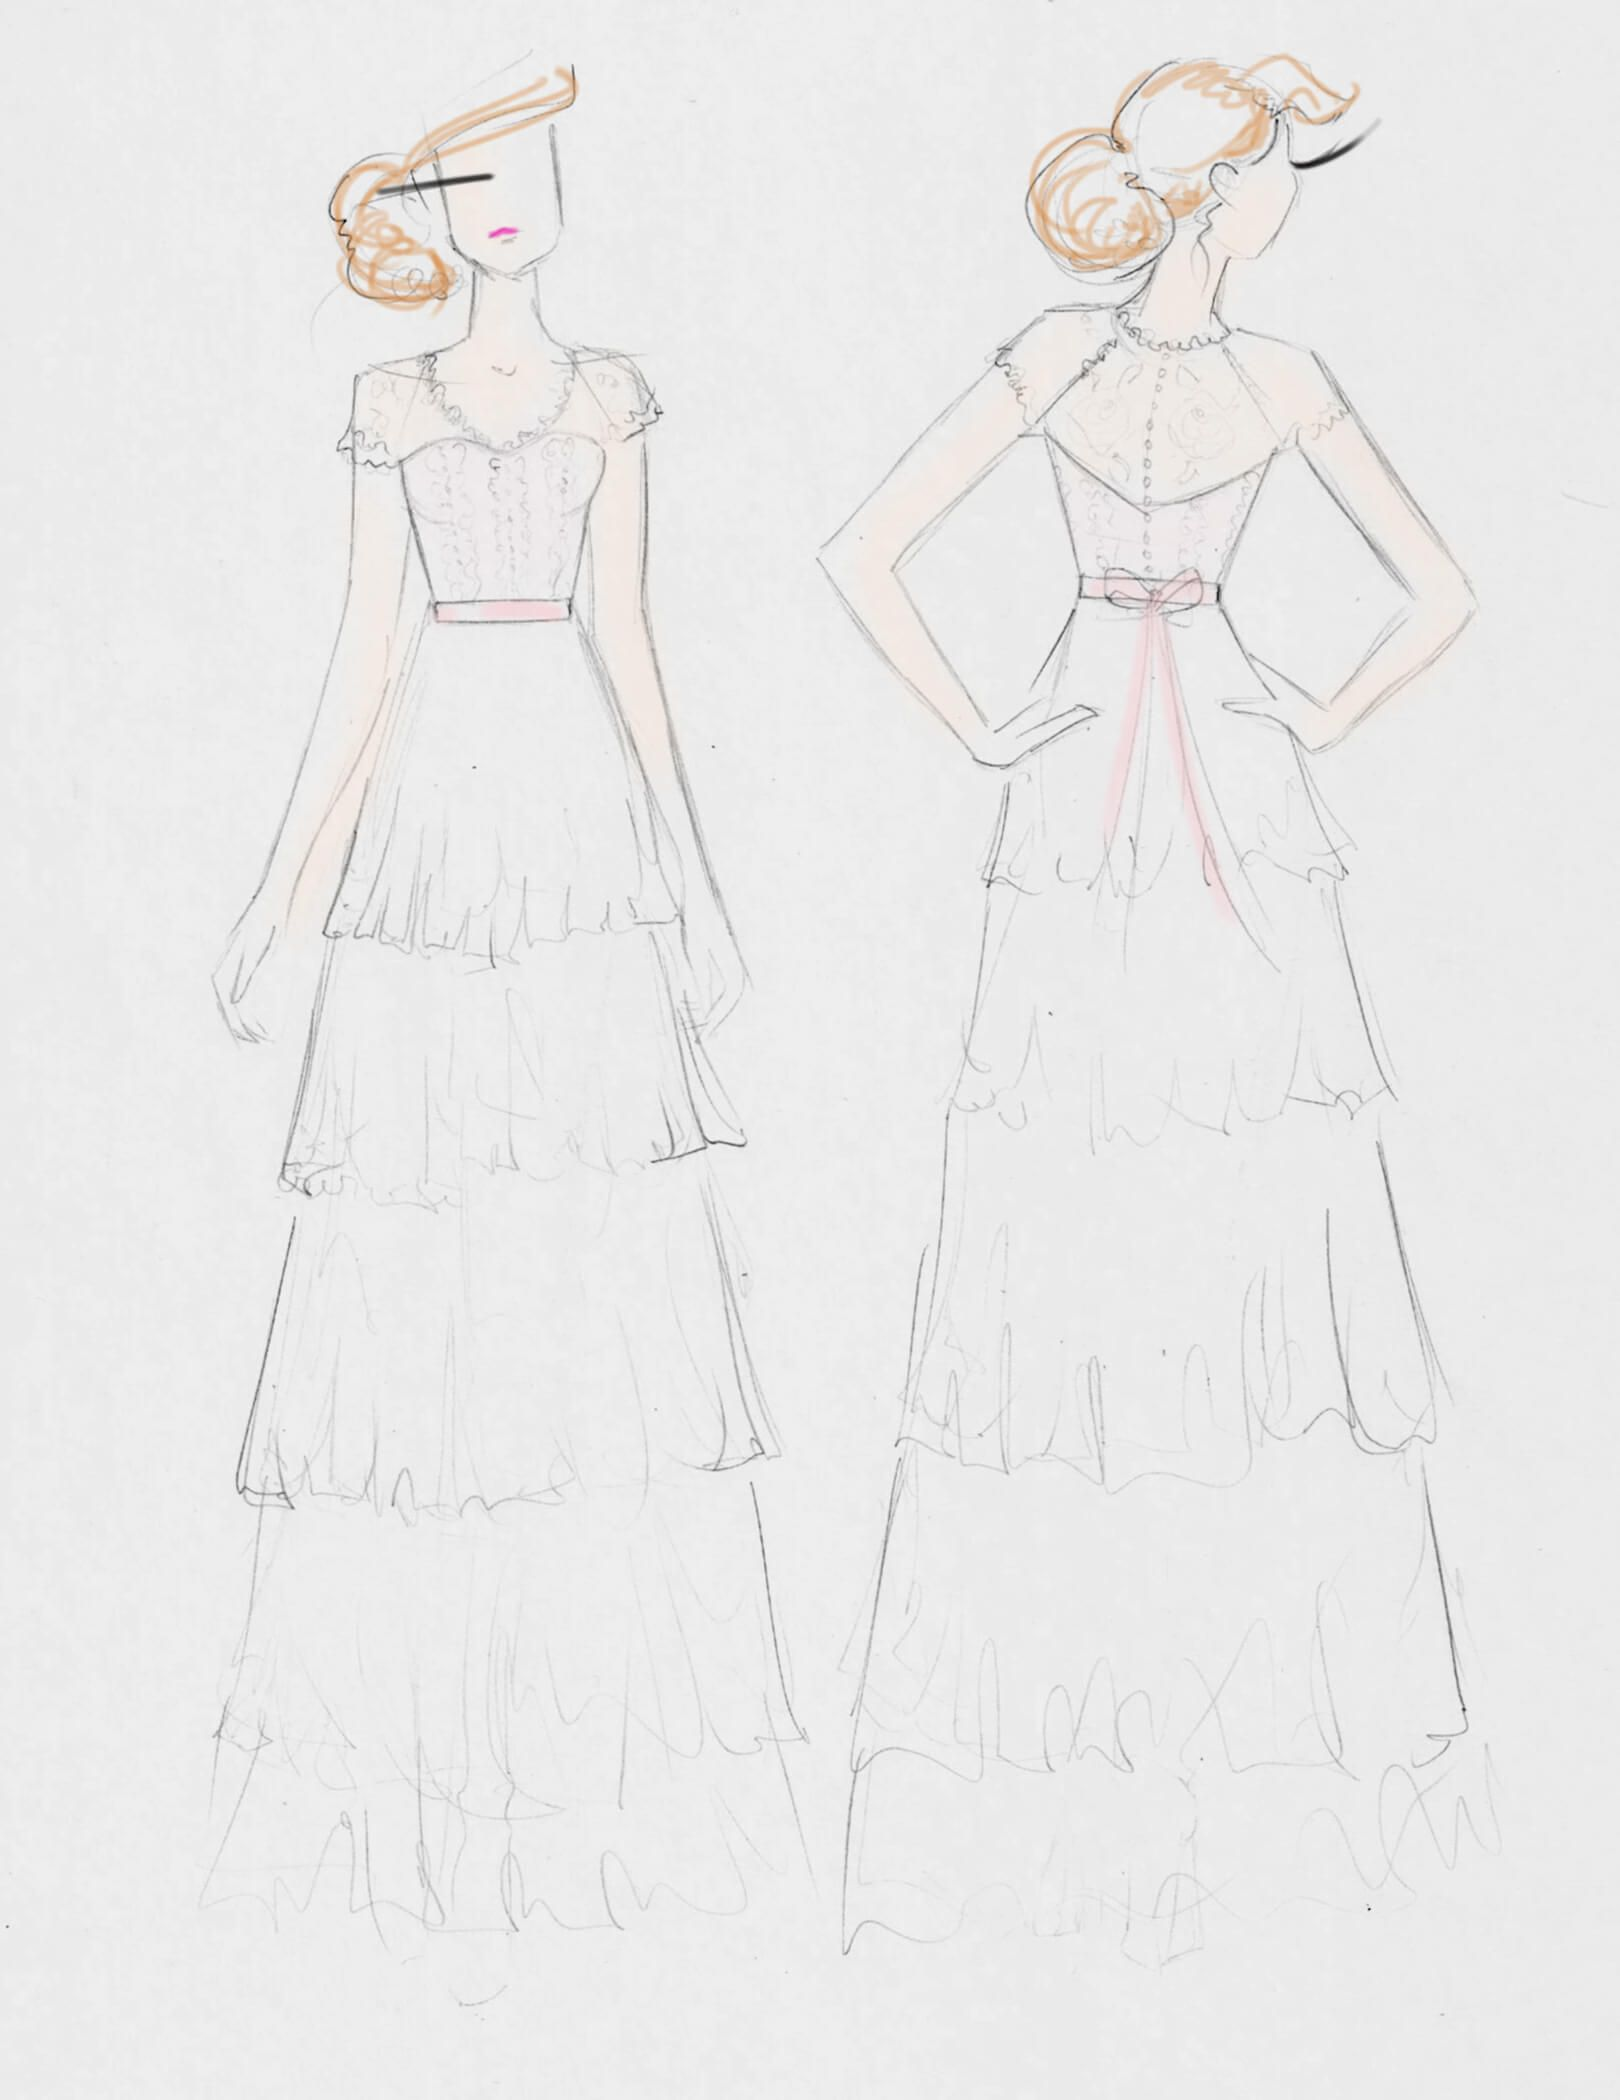 Sketch concept used for karlyus dress custom bridal gowns iuve